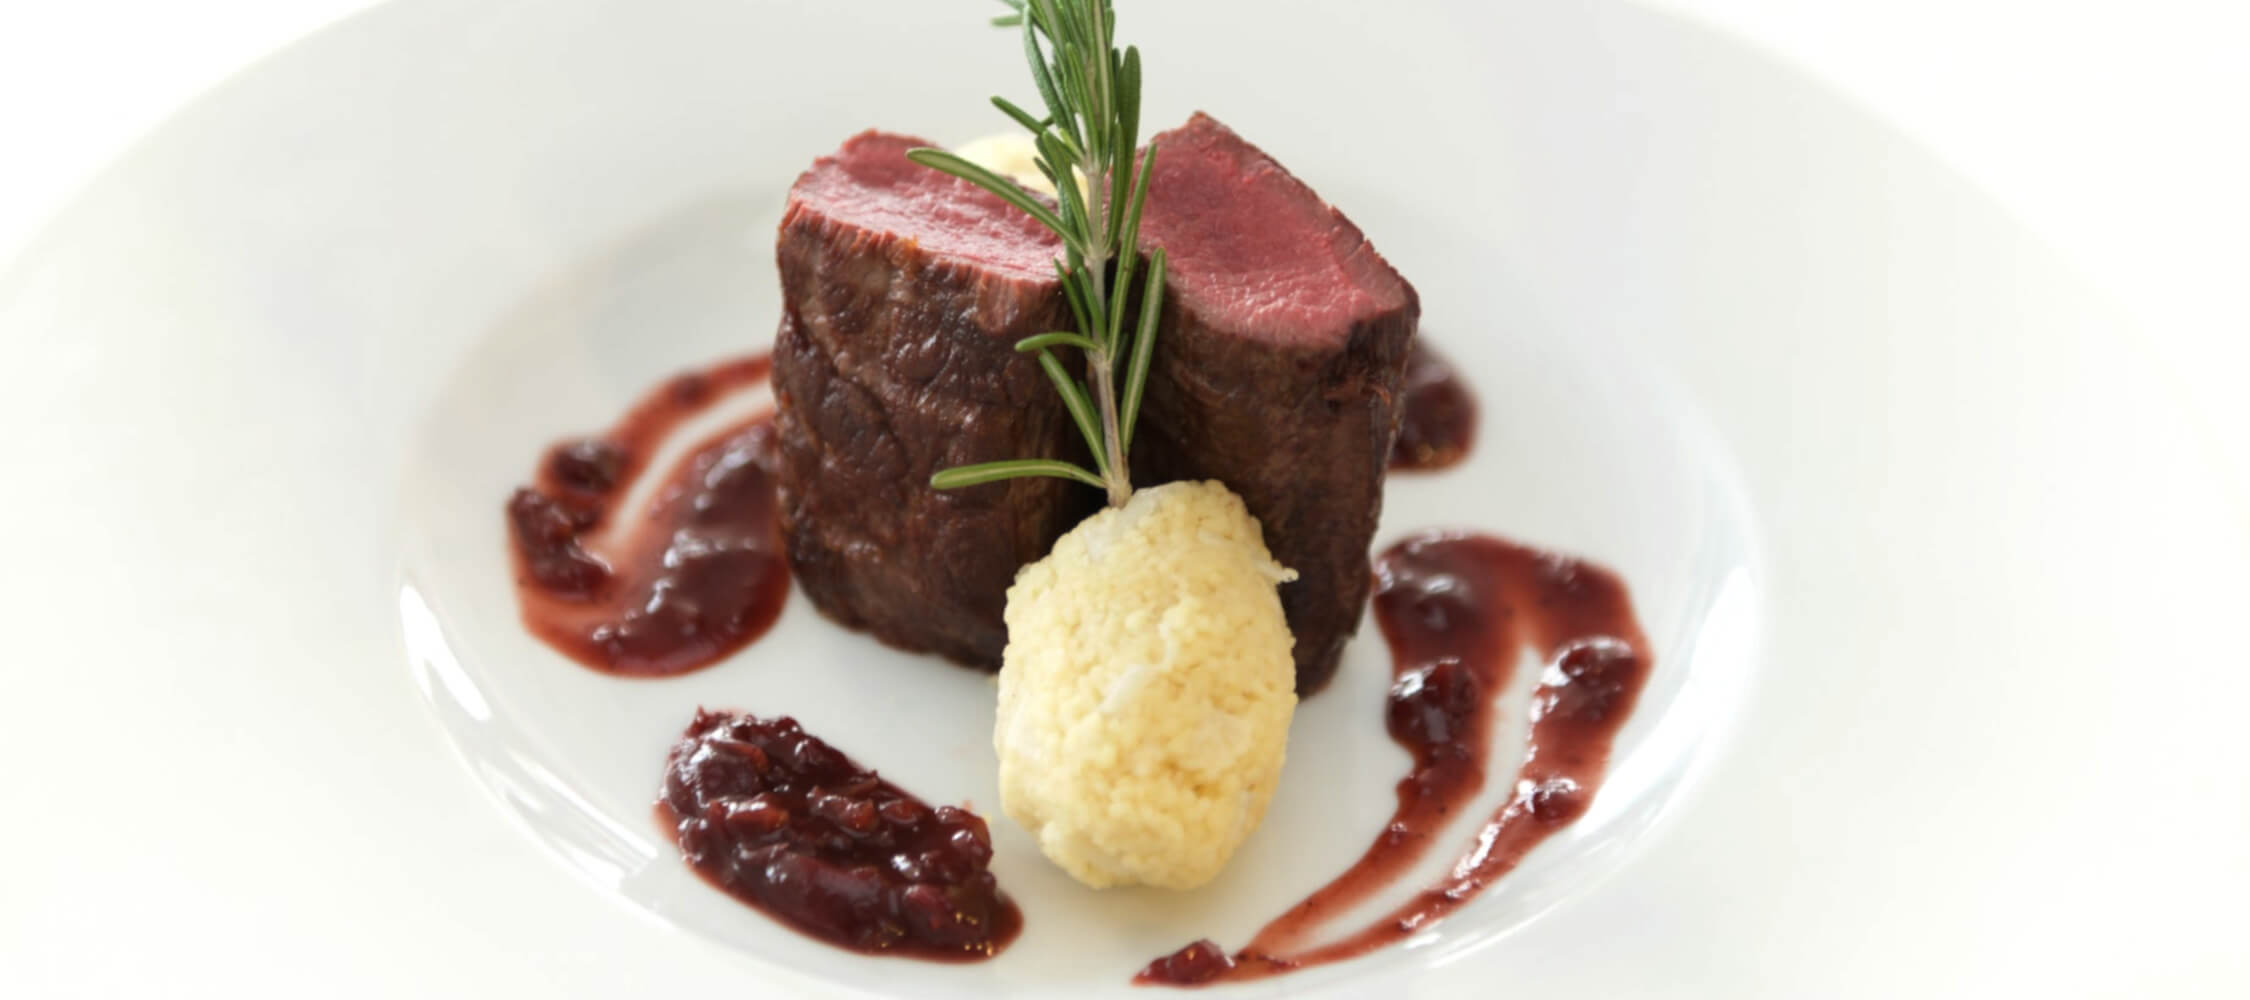 City_Hotel_Merano_Restaurant_City_Dinner_Main_Fleisch_341048_2250x1000